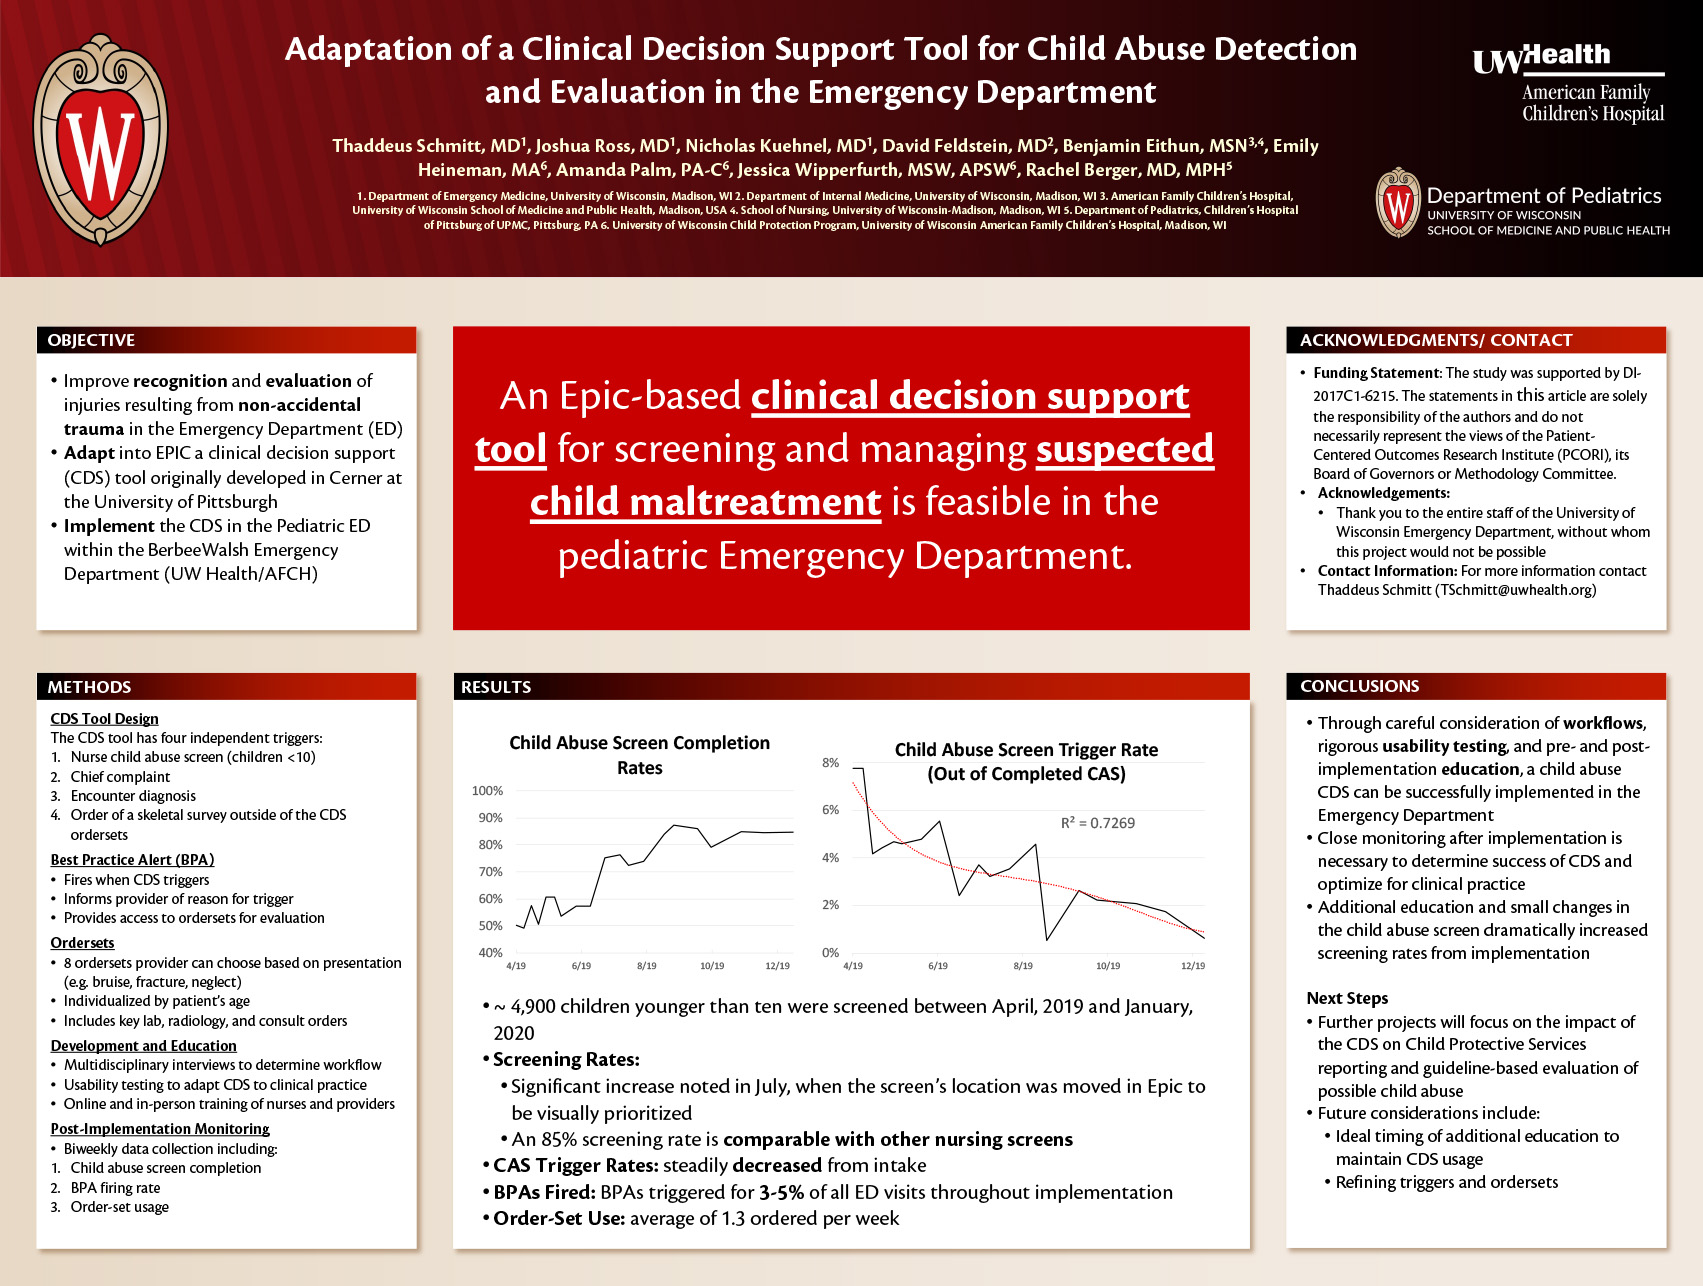 Adaptation of a Clinical Decision Support Toolfor Child Abuse Detection and Evaluation in the Emergency Department poster image